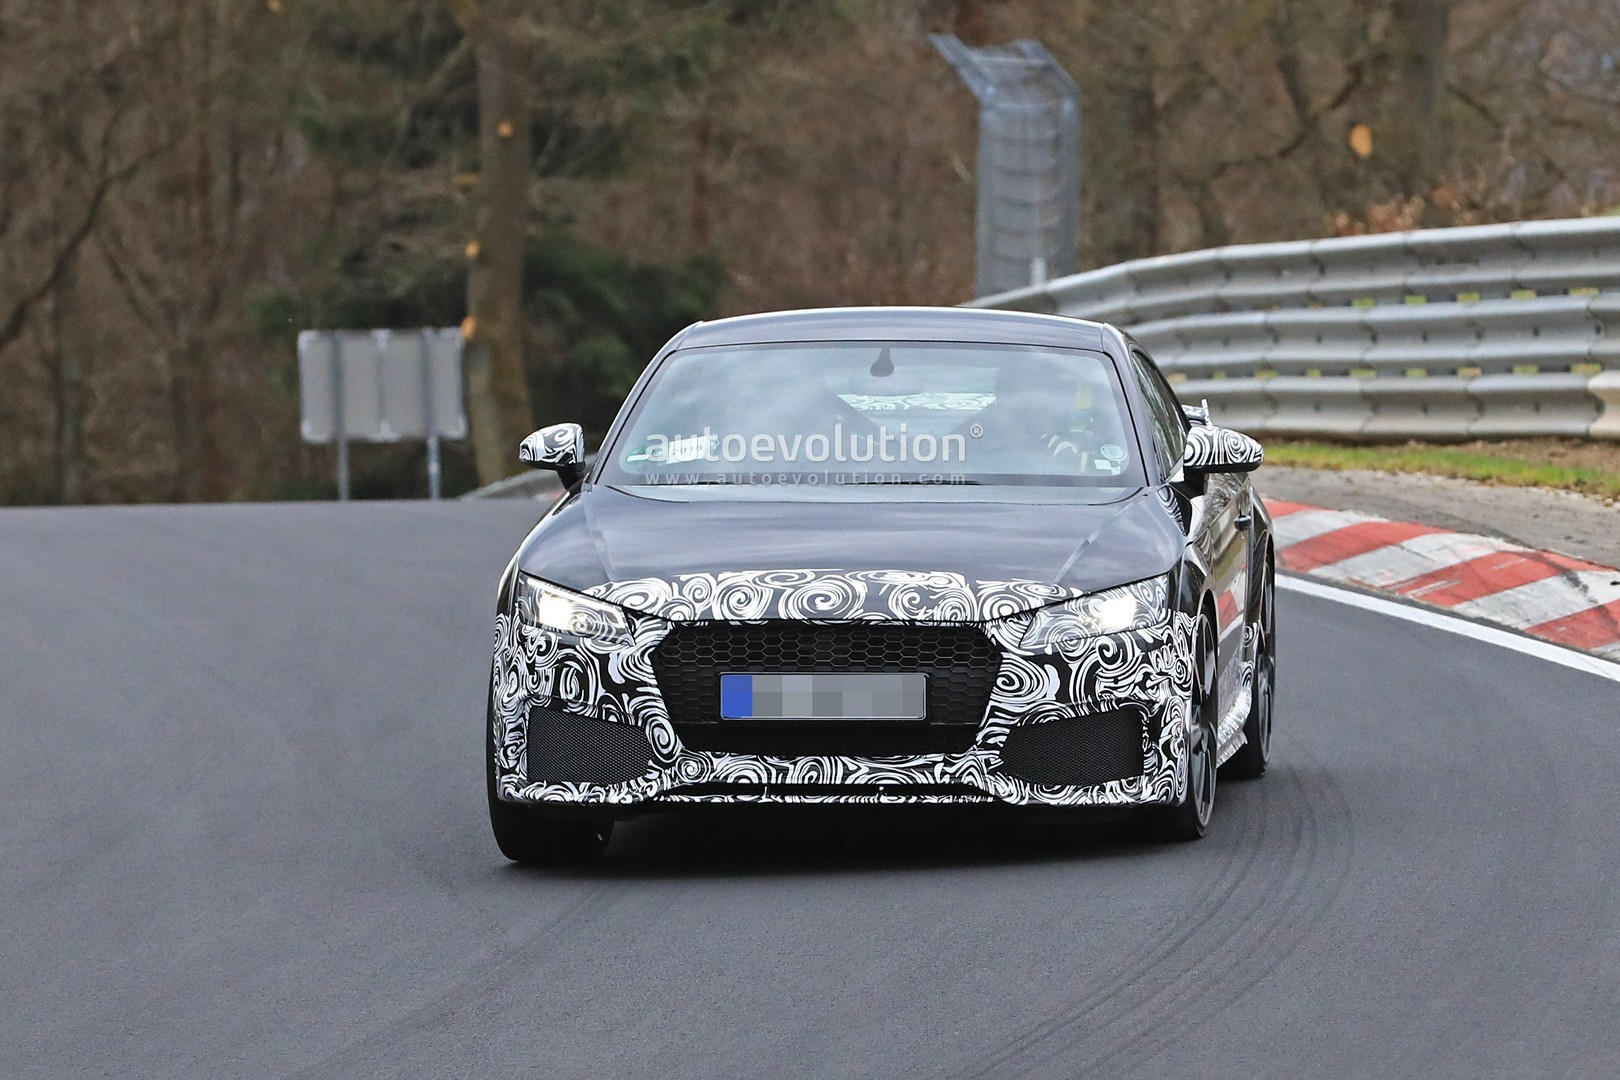 Spyshots: 2019 Audi TT RS Facelift Testing at the Nurburgring - autoevolution